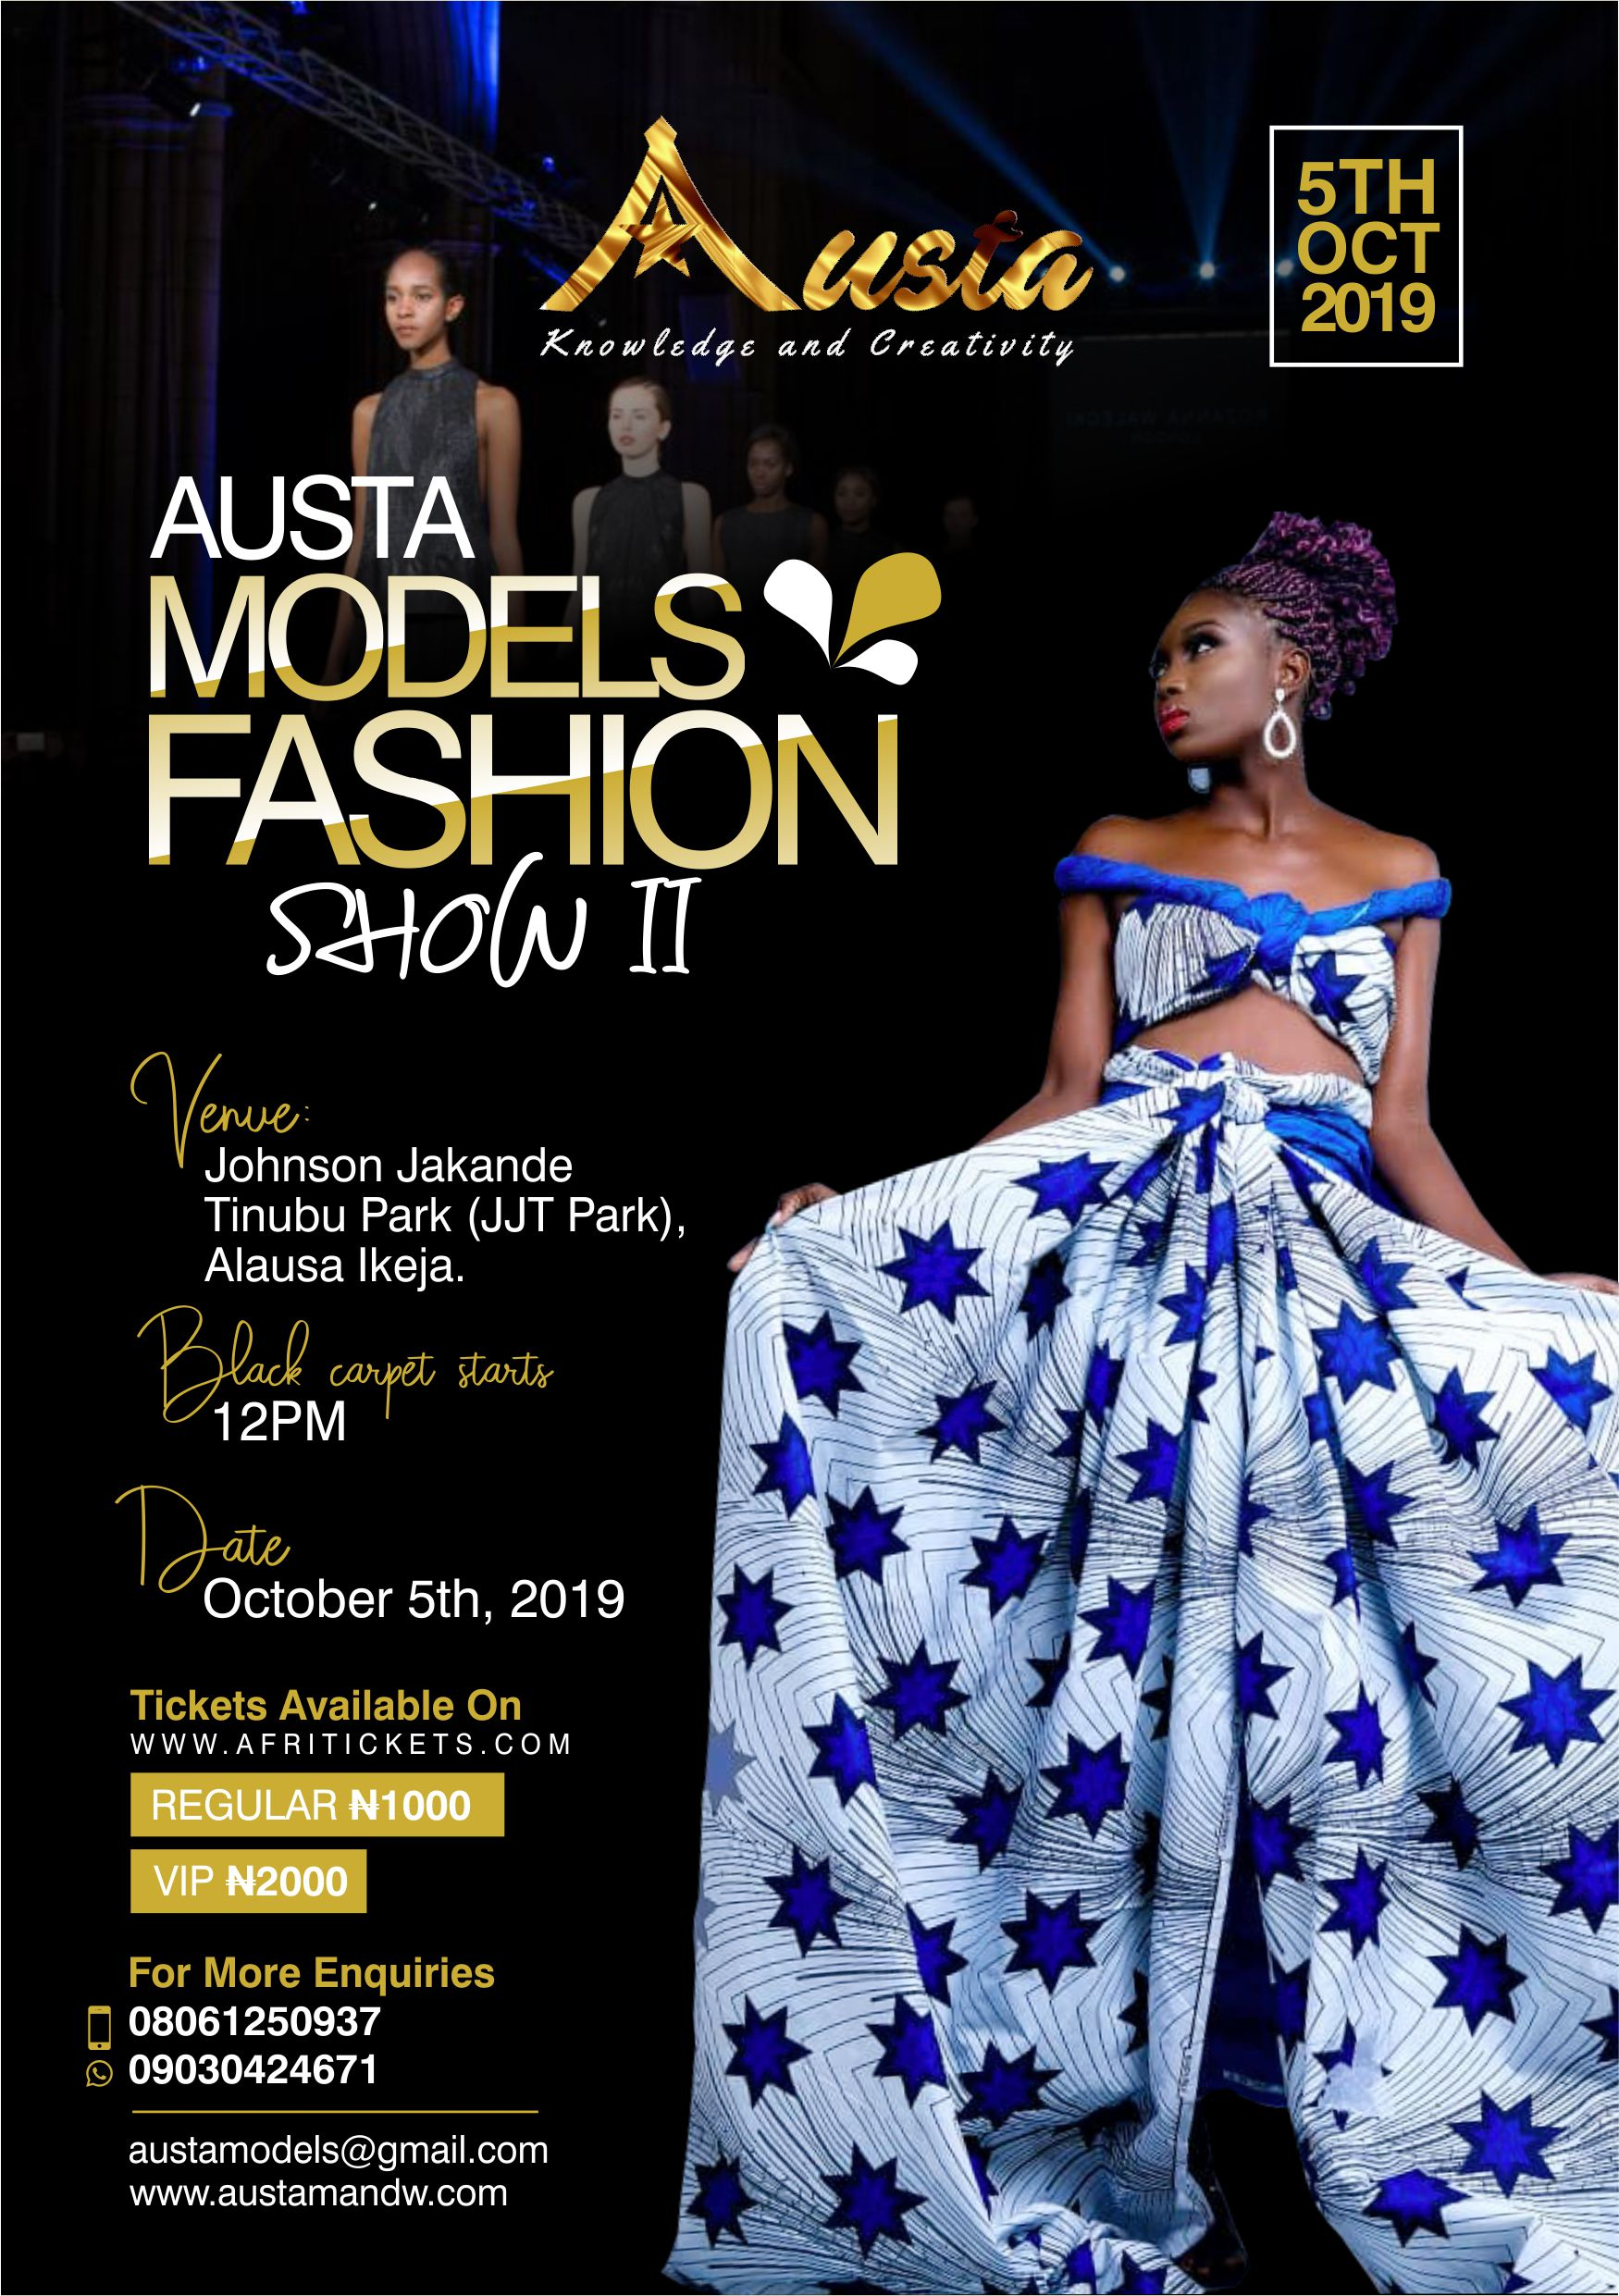 Austa Models Fashion Show II Post free event in Nigeria using tickethub.ng, buy and sell tickets to event